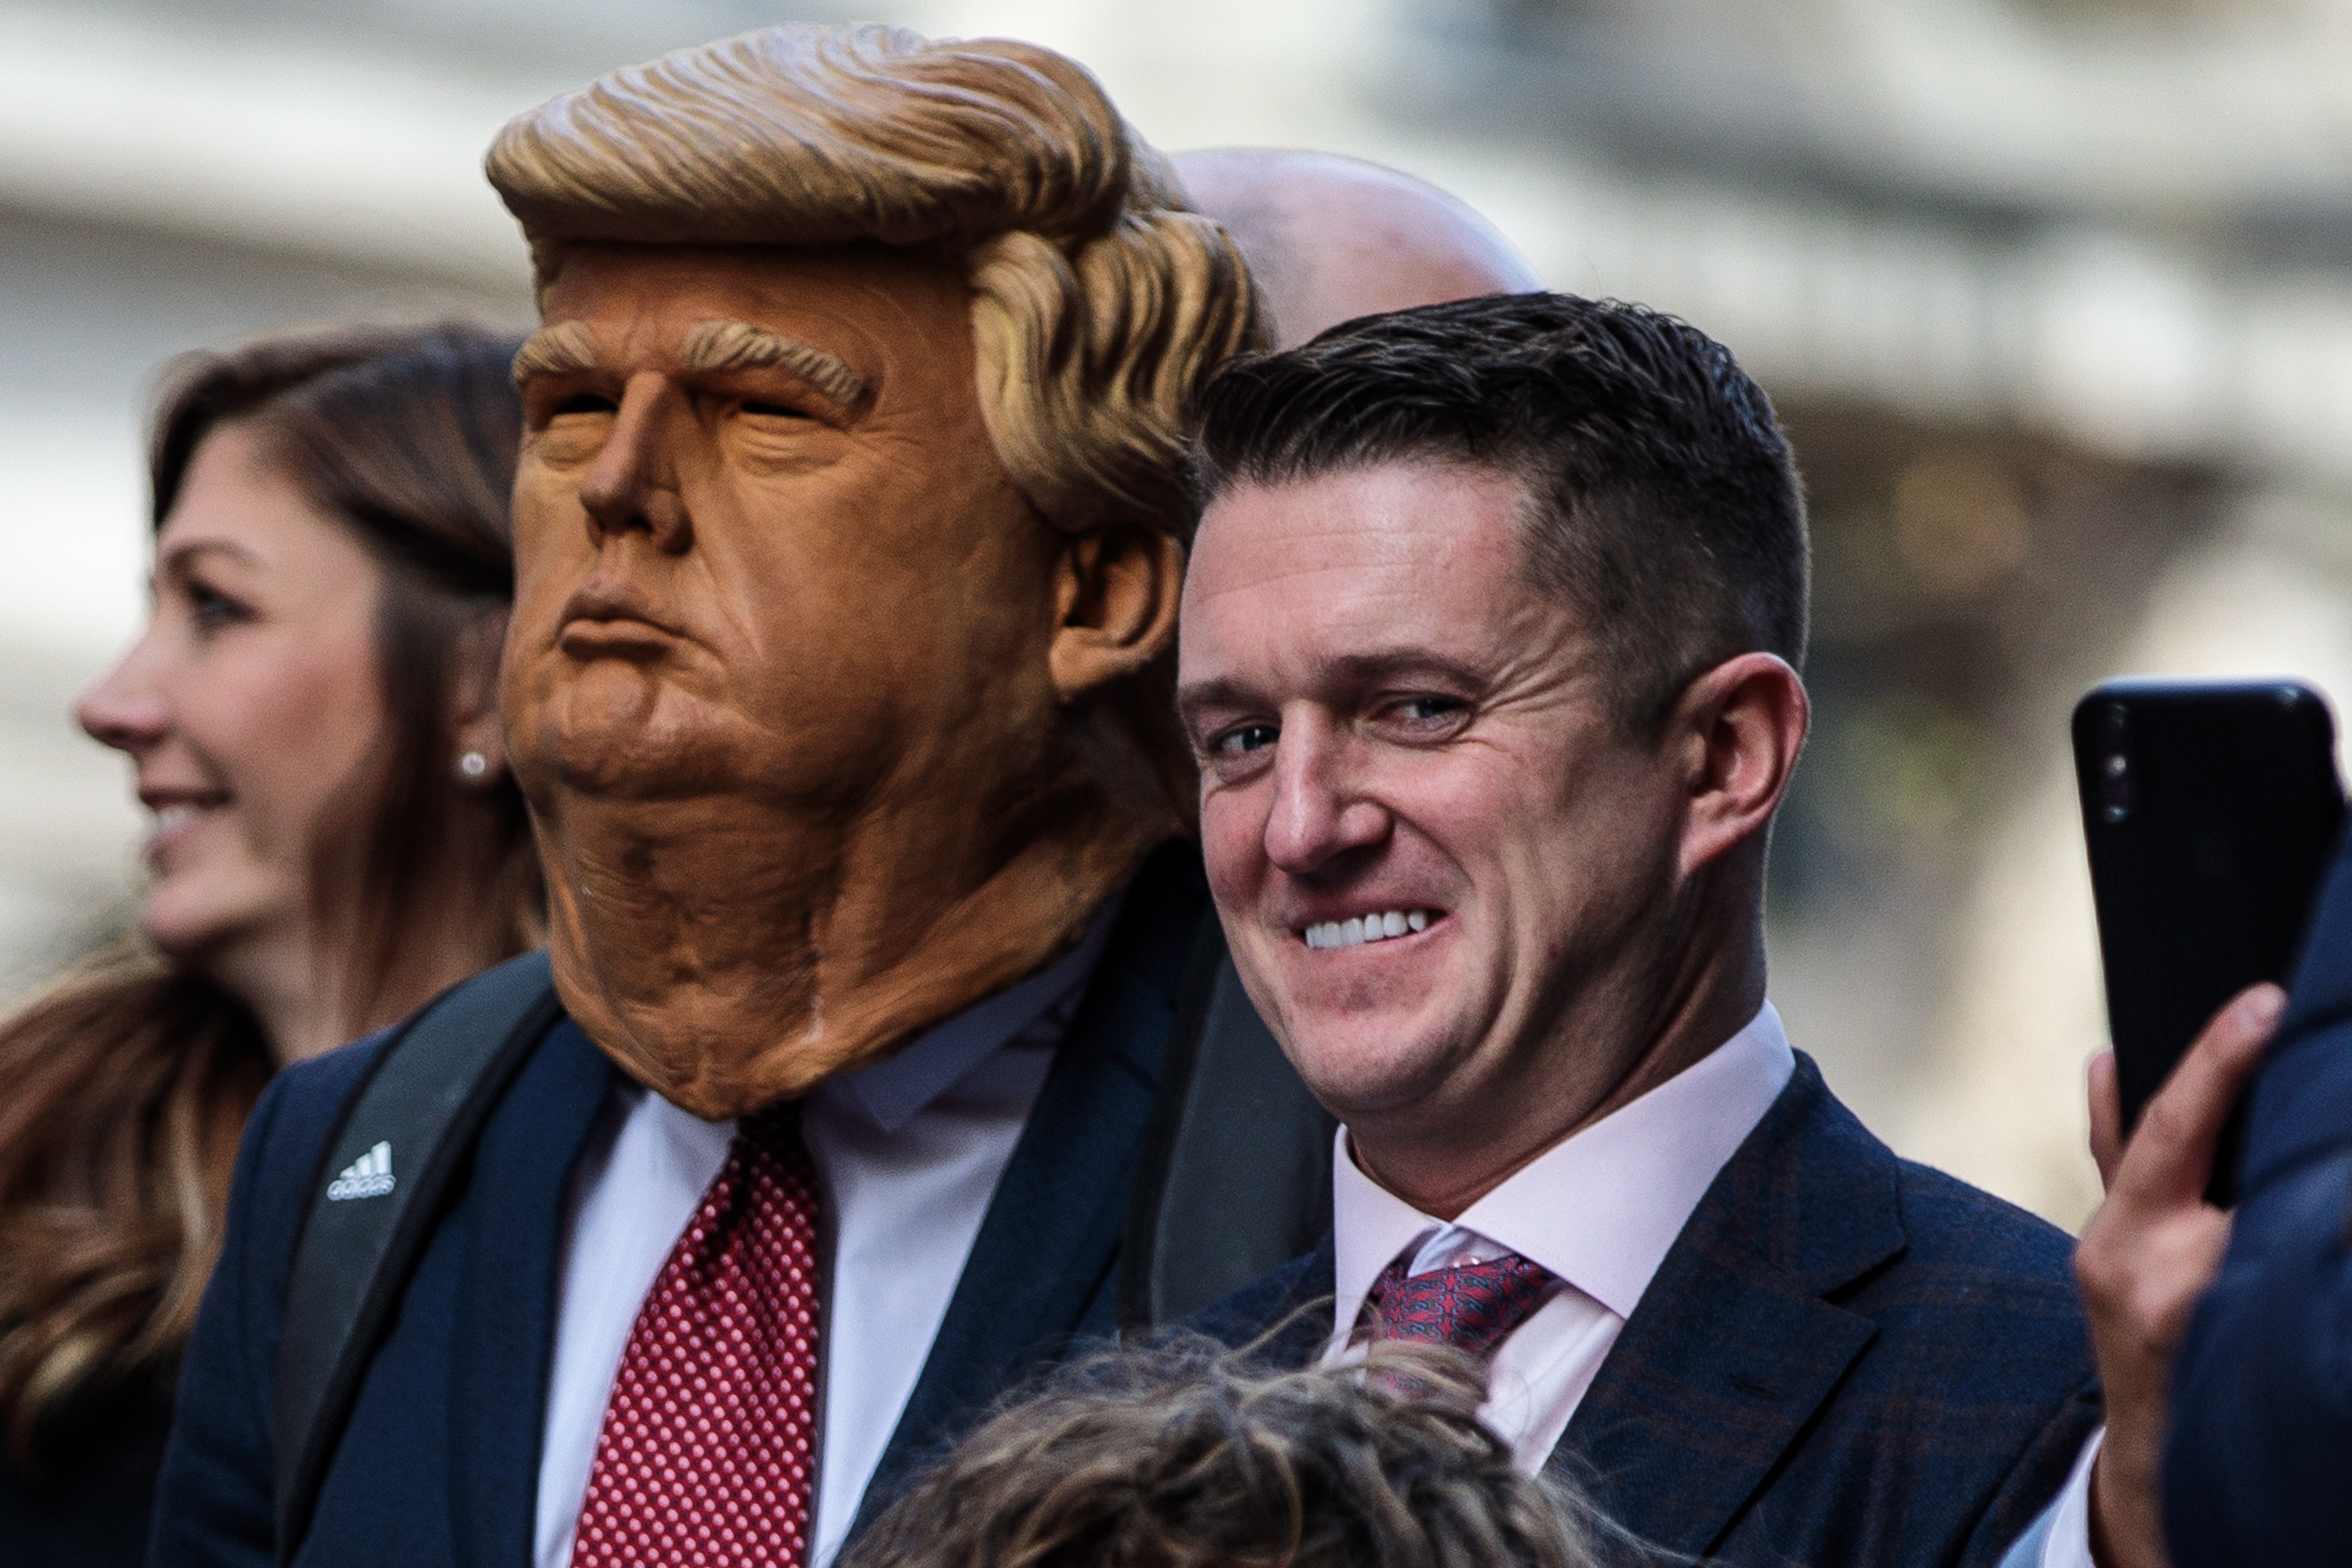 Far-right figurehead Tommy Robinson, real name Stephen Yaxley-Lennon stands beside a man in a Donald Trump mask as he addresses supporters outside the Old Bailey on October 23, 2018, in London, England. The Former English Defence League leader and British National Party member is facing a re-trial on charges of contempt. (Getty Images)